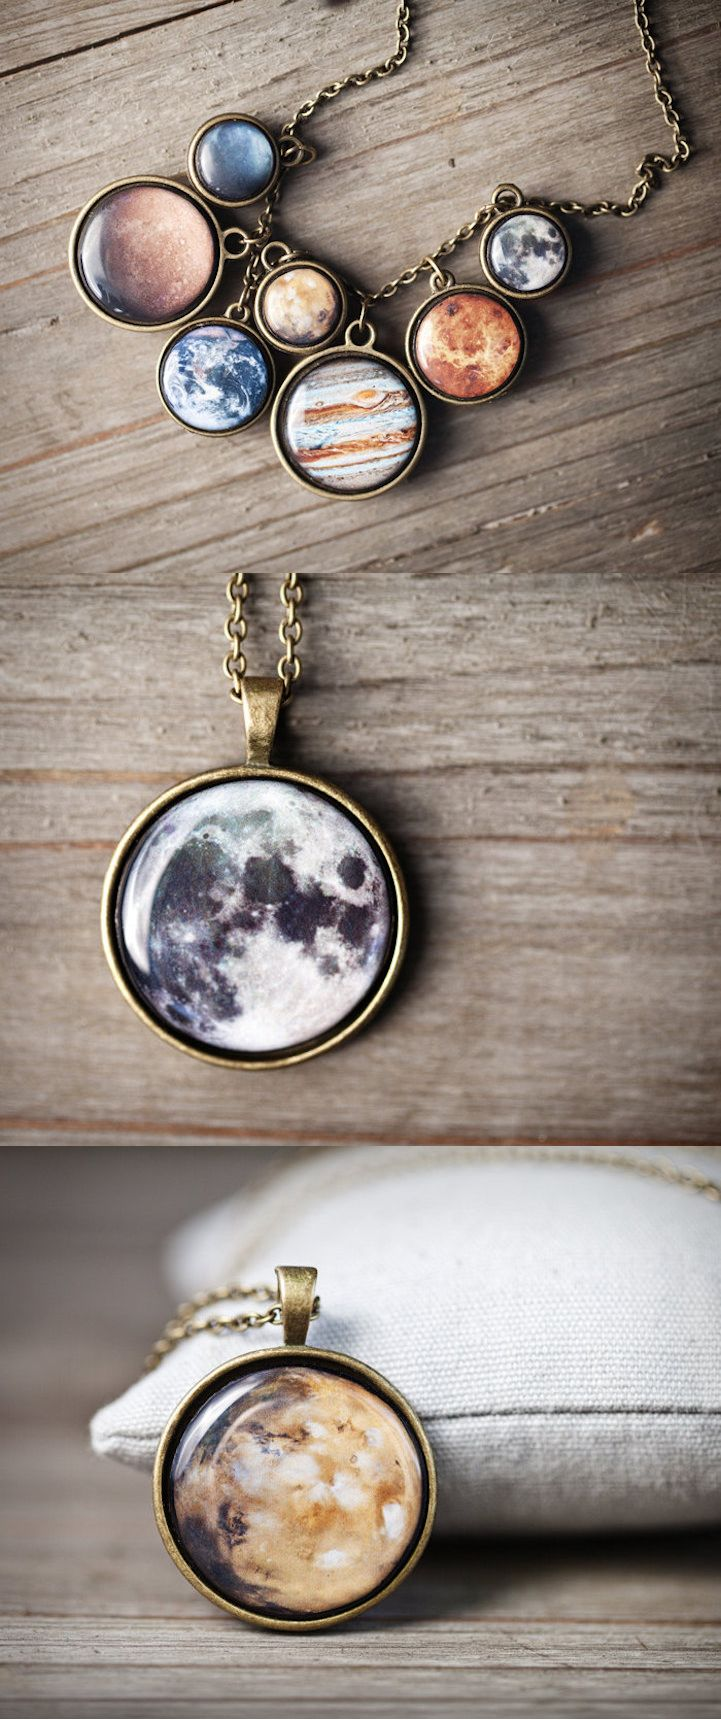 It's now possible to wear the cosmos around your neck. #etsy #jewelry